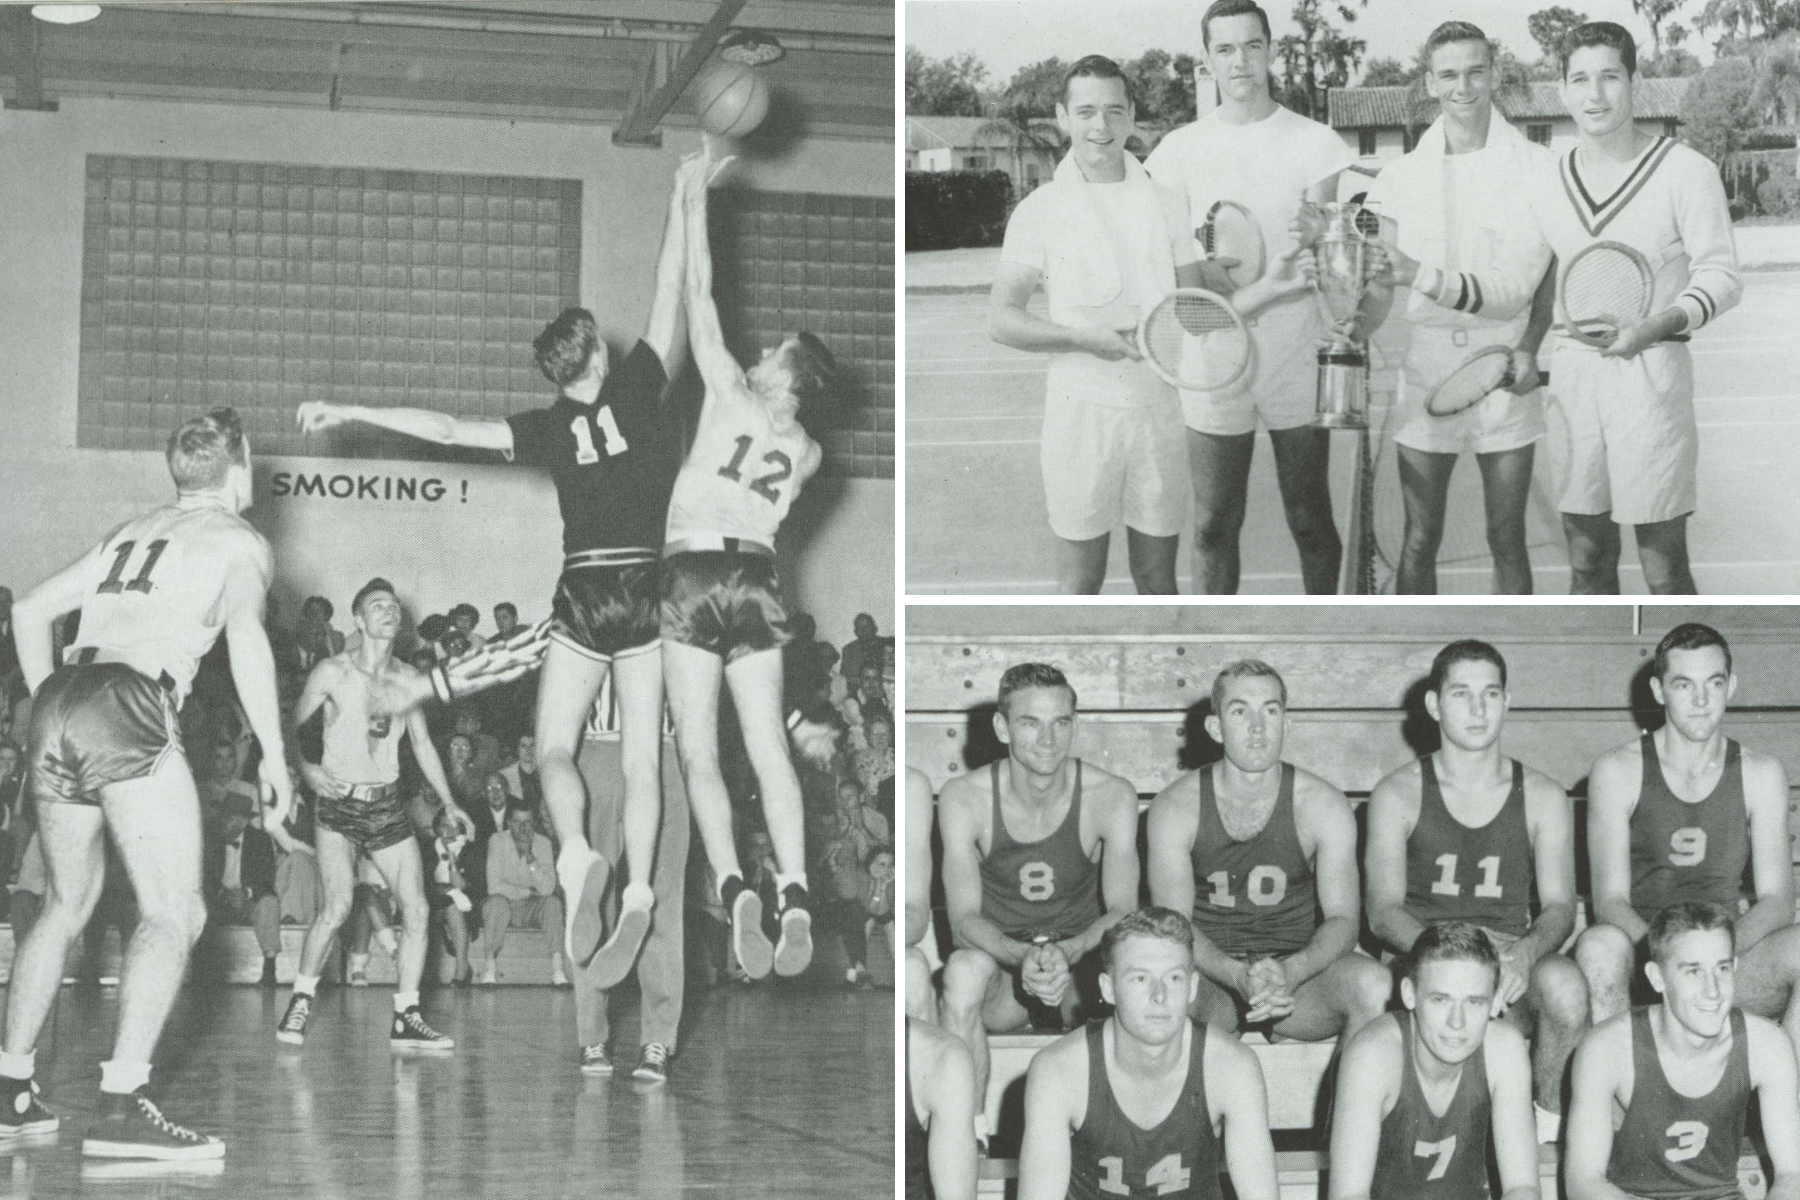 Pictures of Frank Barker '52 '06H's time at Rollins on the basketball and tennis teams.